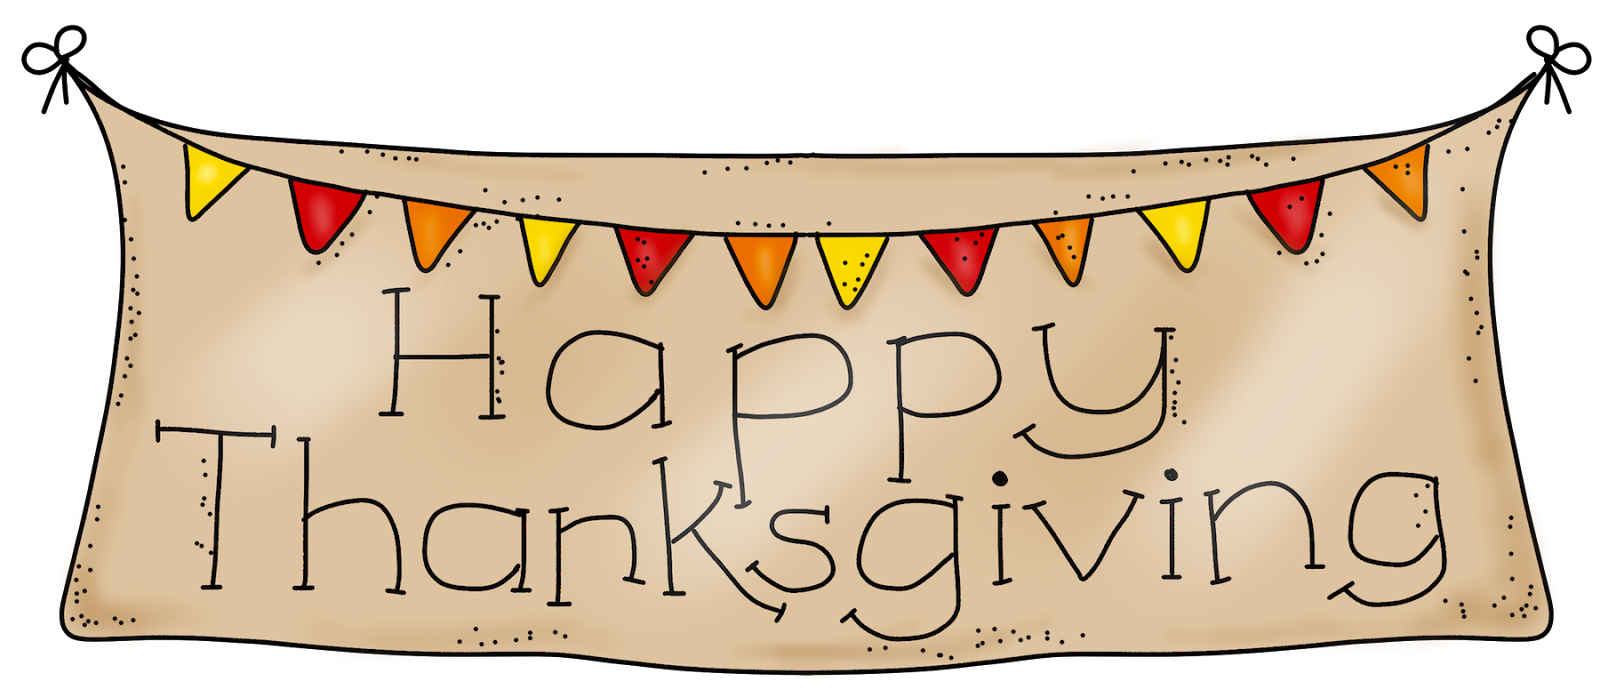 Thanksgiving clipart thanksgiving 2015 Happy 2015 – 2015 November